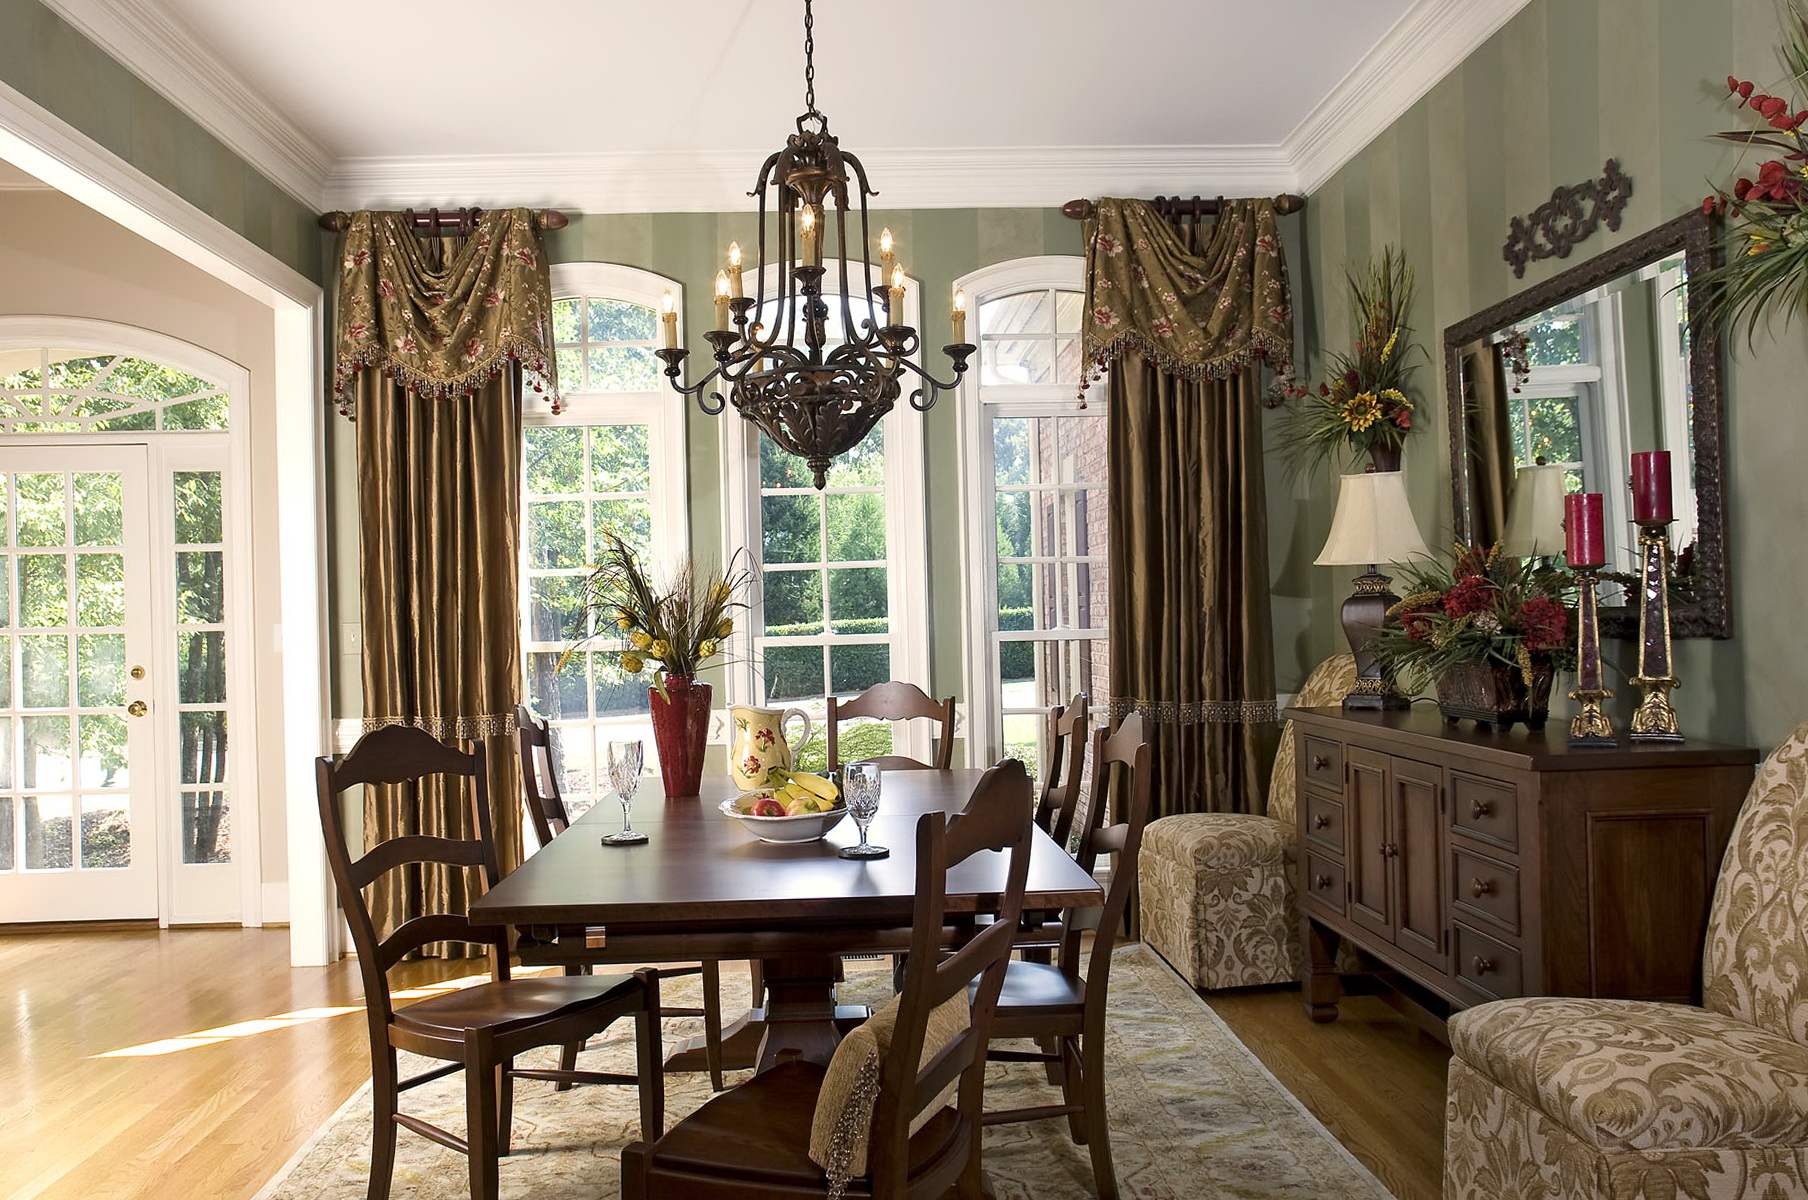 Curtain Formal Curtains Dining Rooms Dining Room Curtain ... on Dining Room Curtain Ideas  id=70096